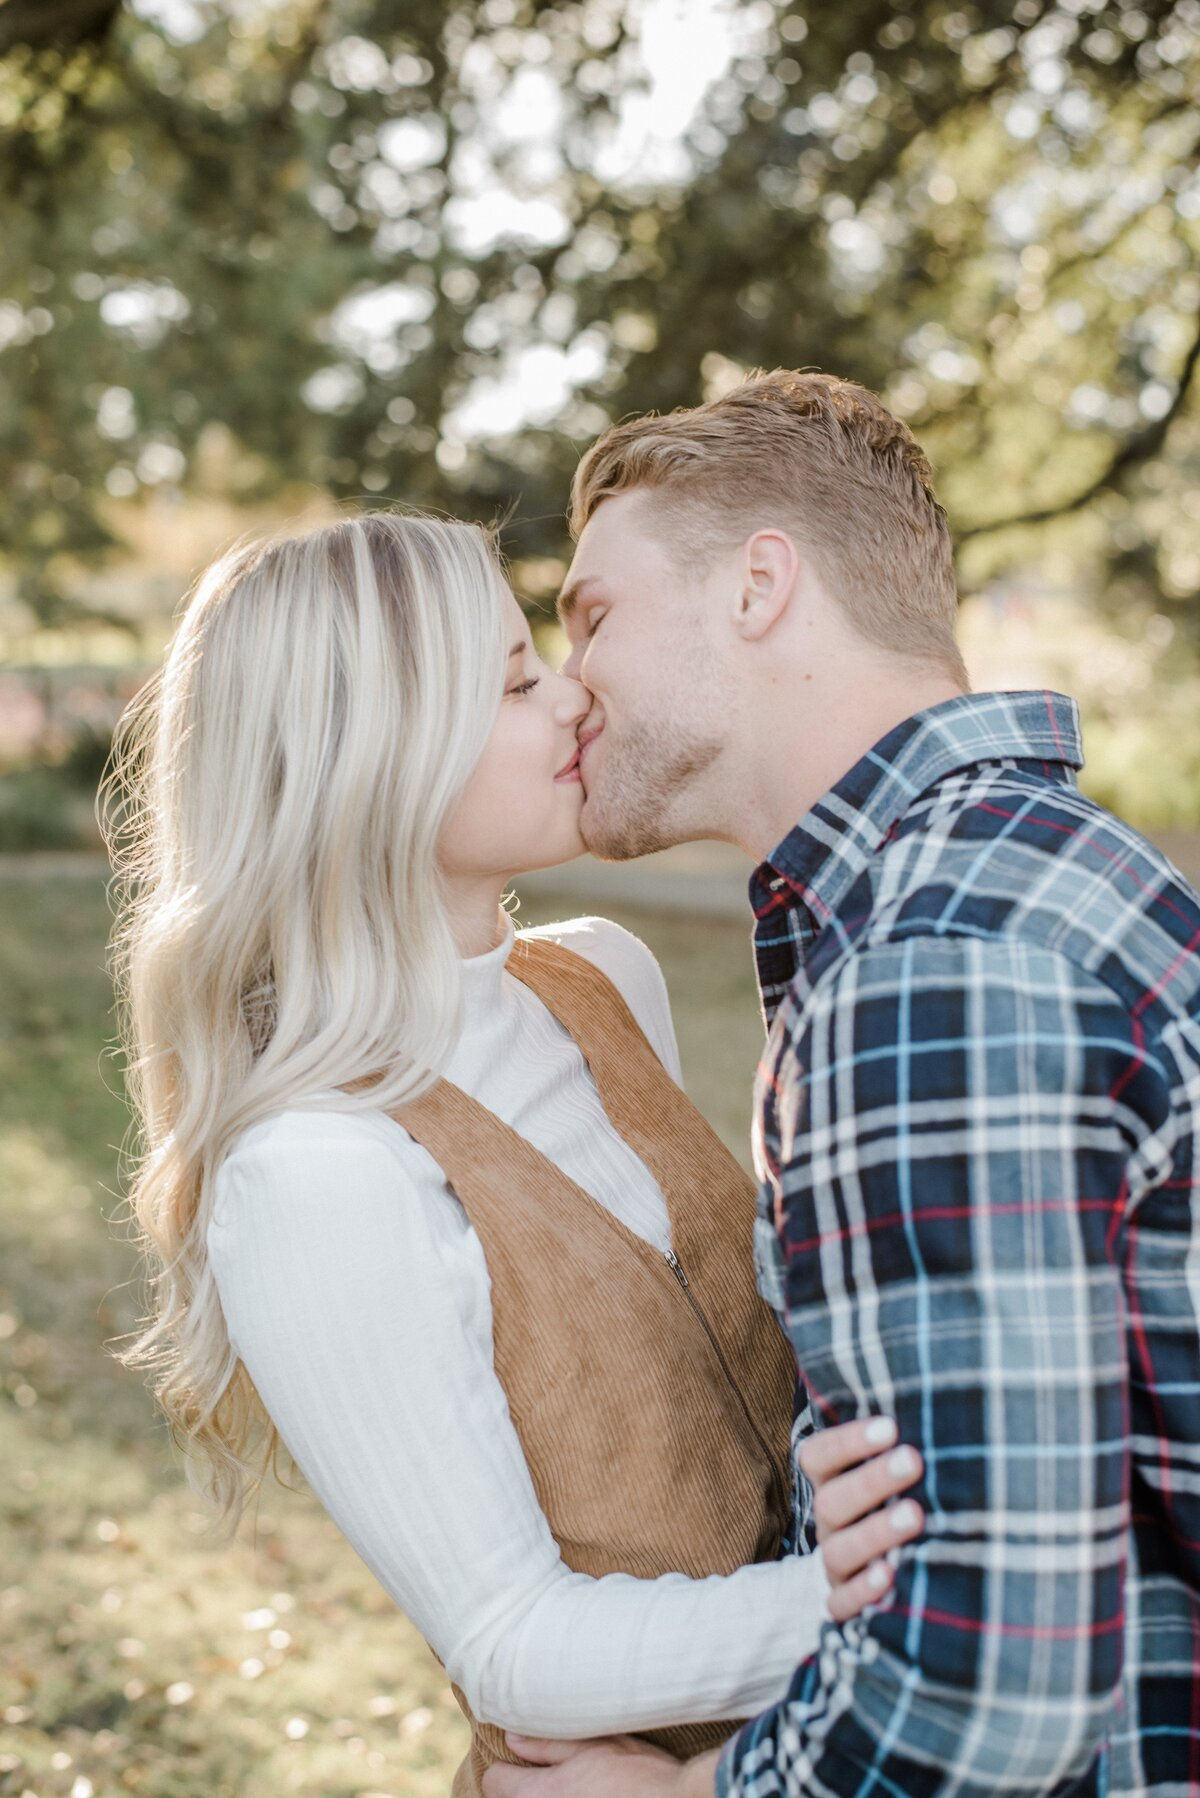 Engagement photographer Texas | Patti Darby Photography 47